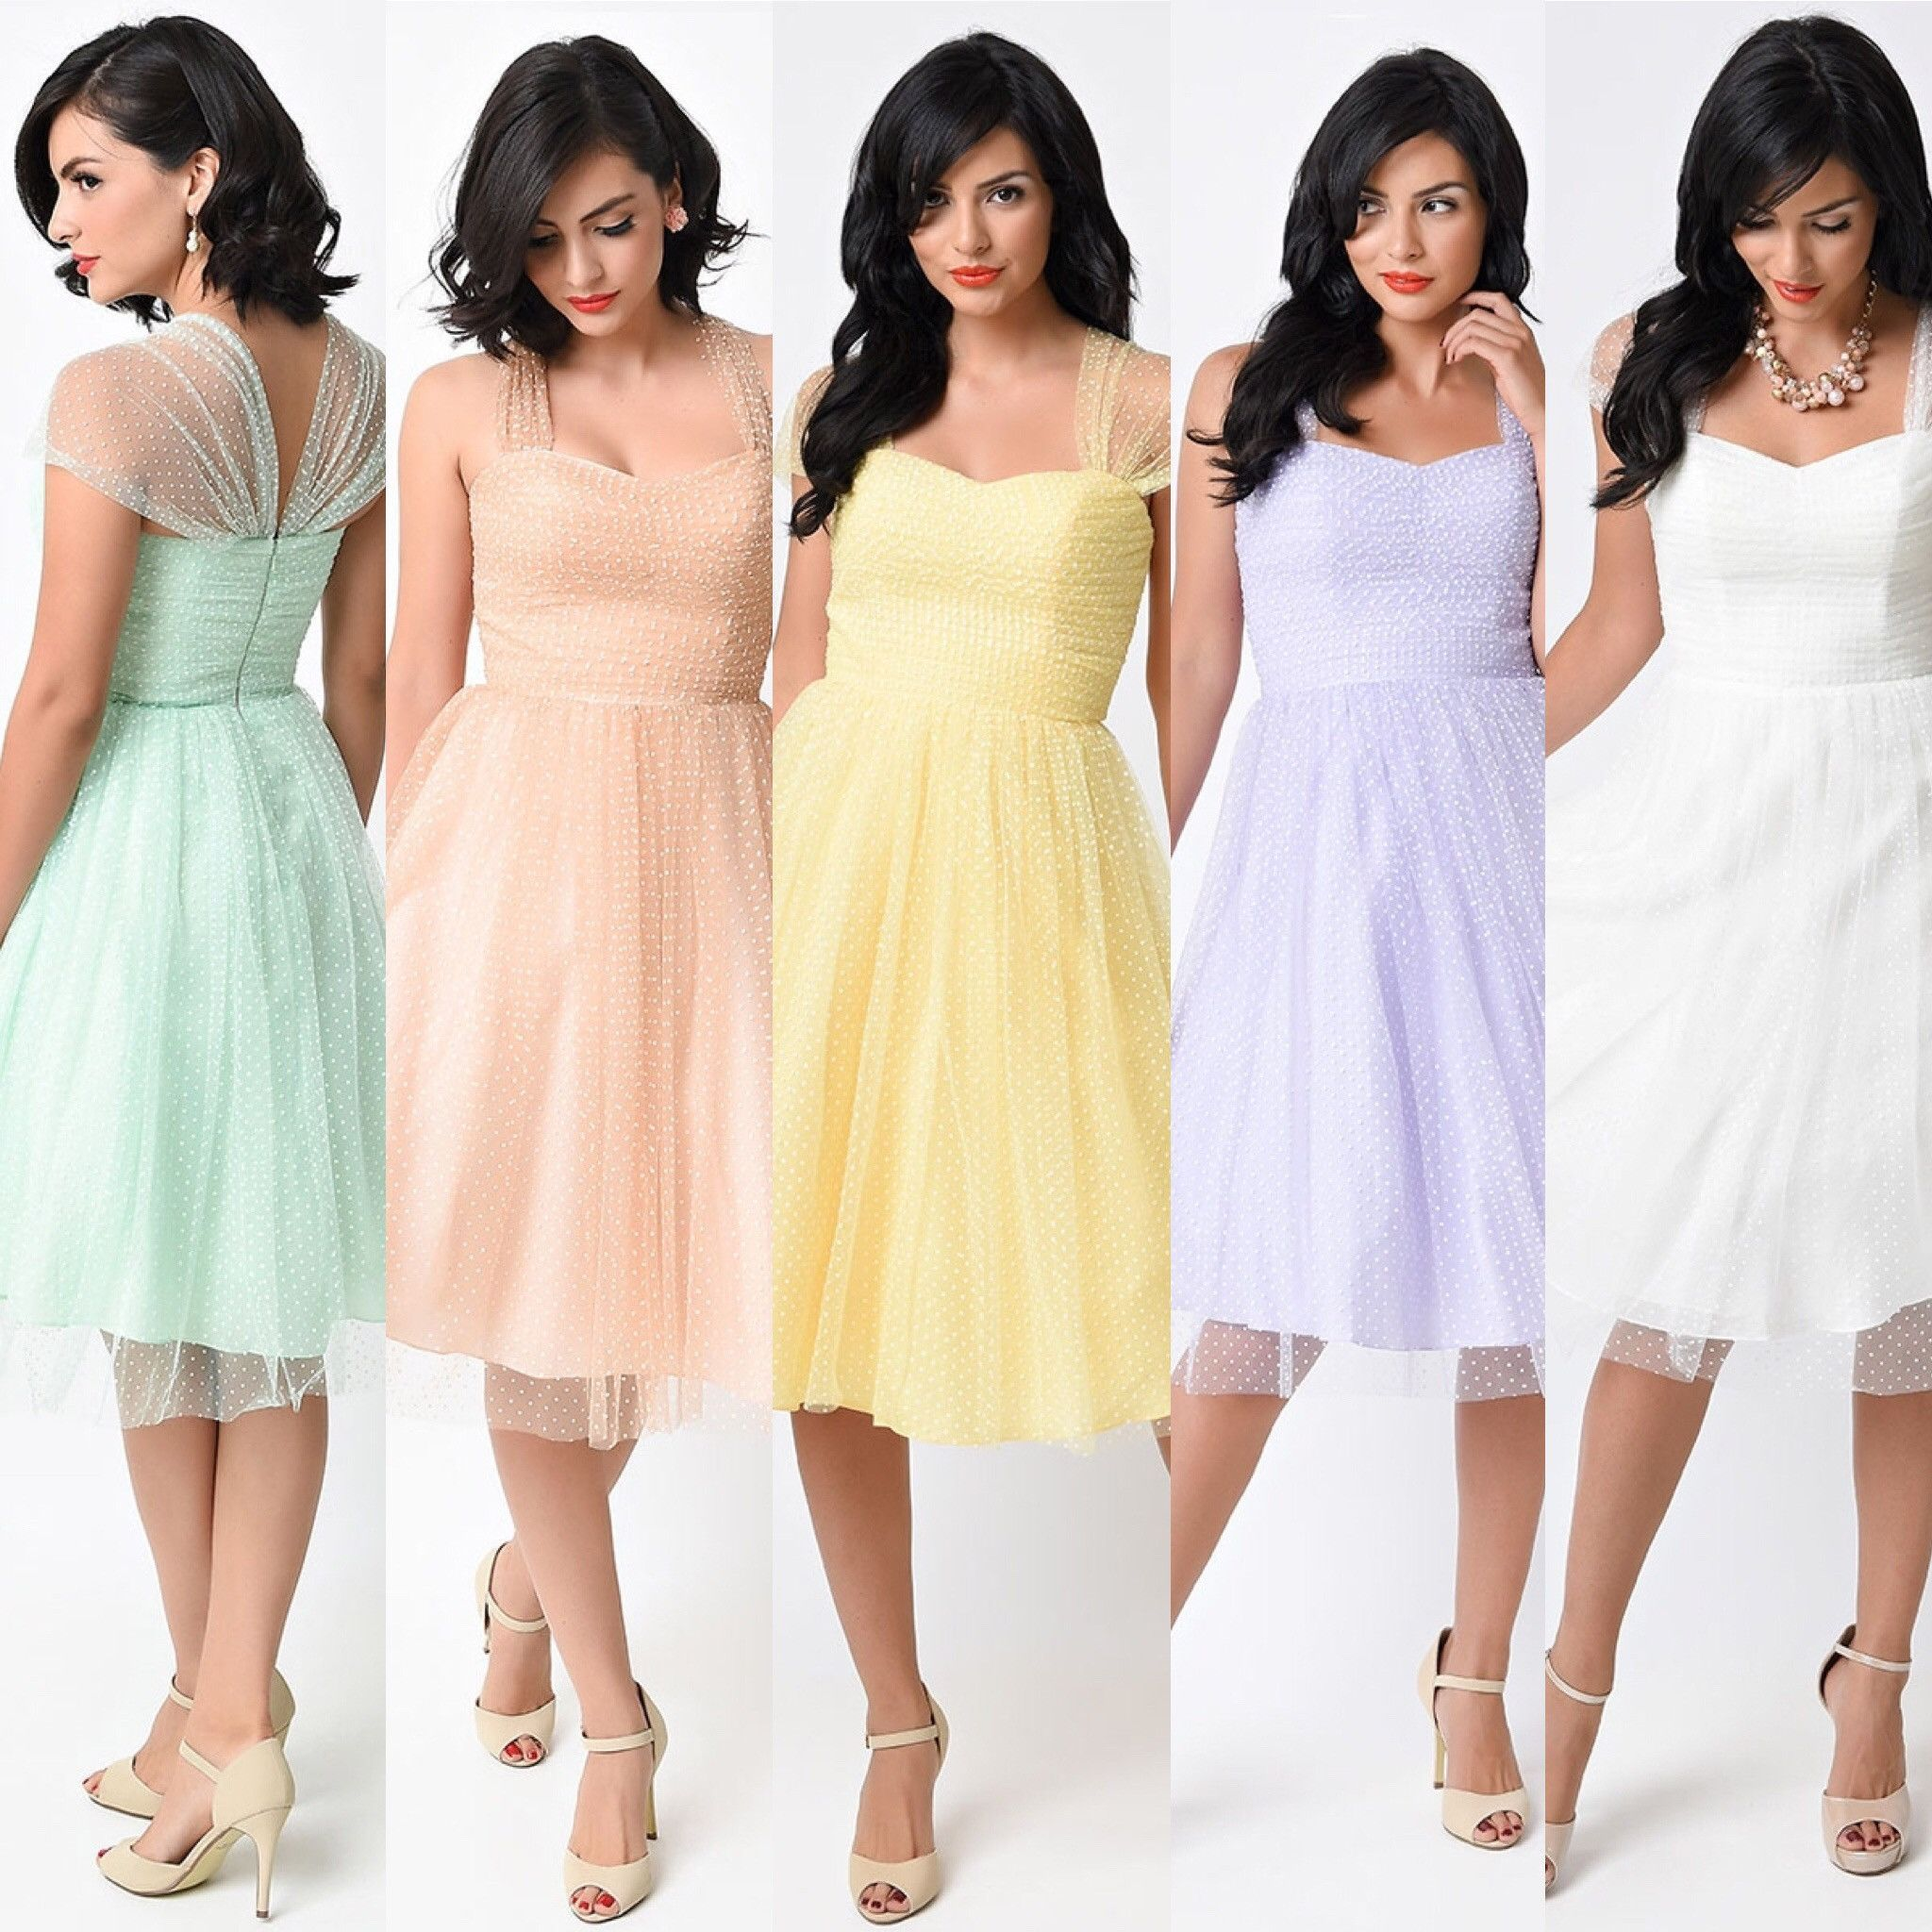 Retro Vintage Cocktail Dress with sheer cap sleeves in pastel ...